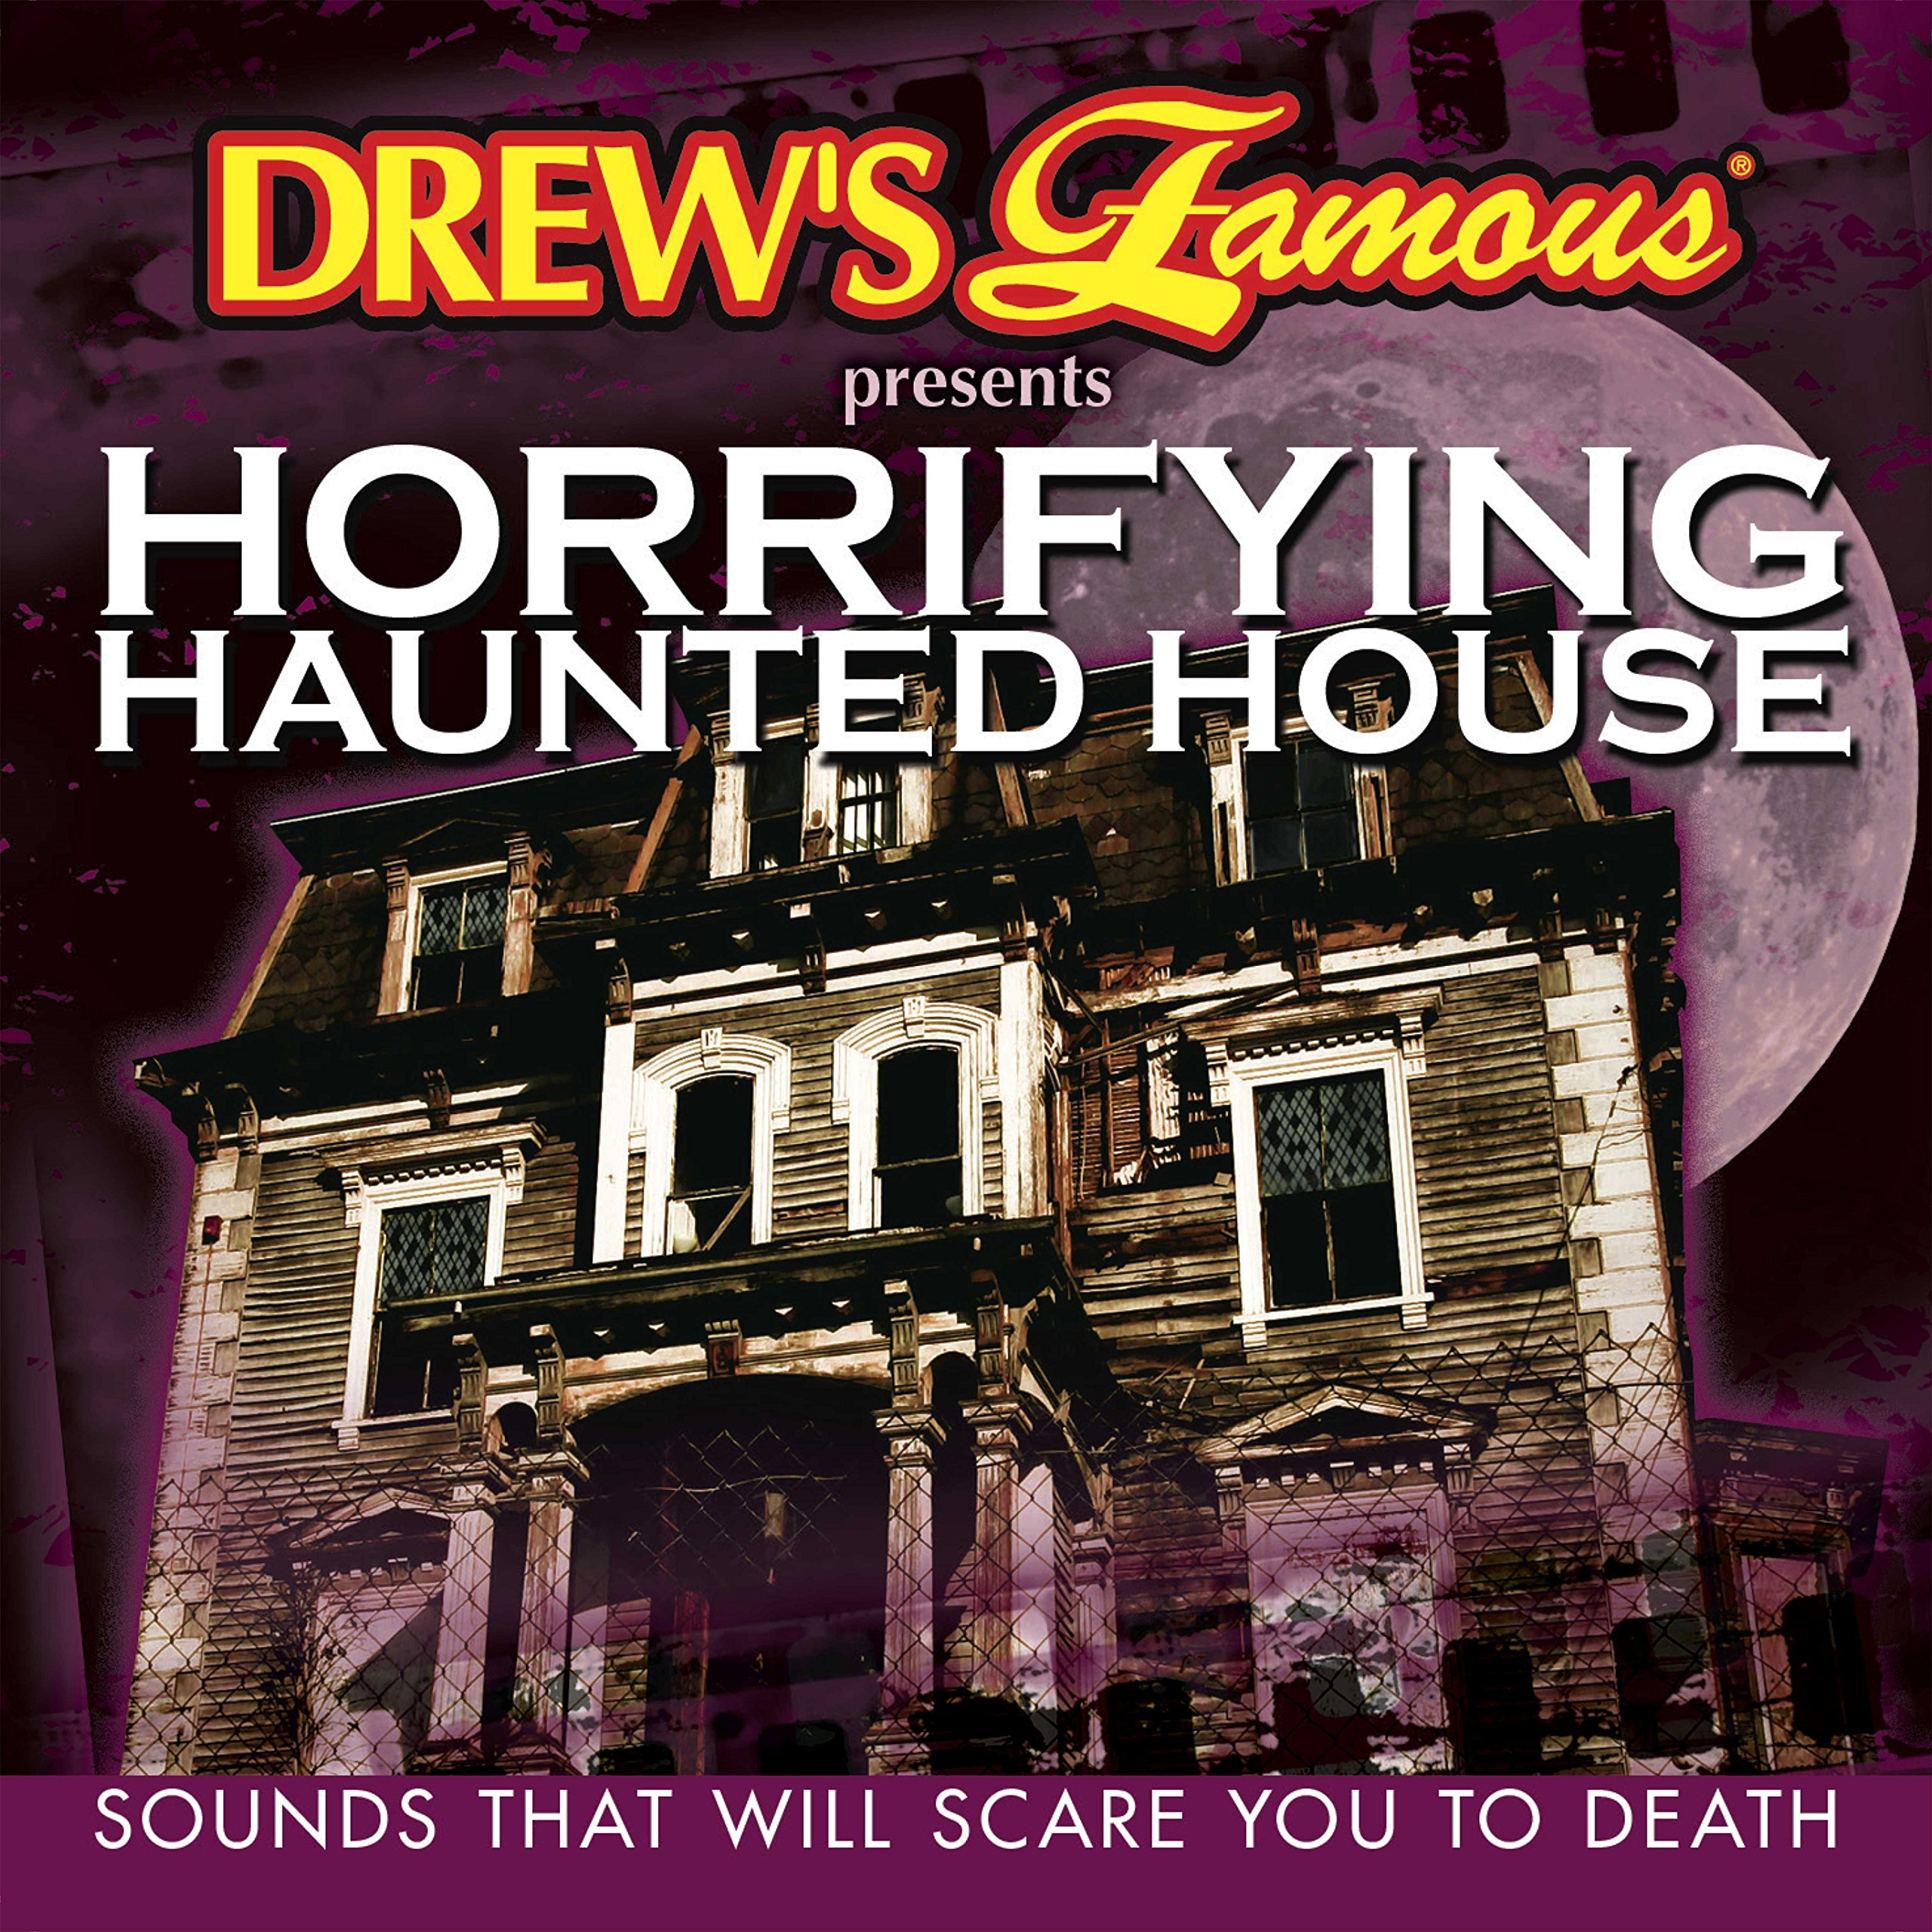 Horrifying Haunted House by Drew's Entertainment